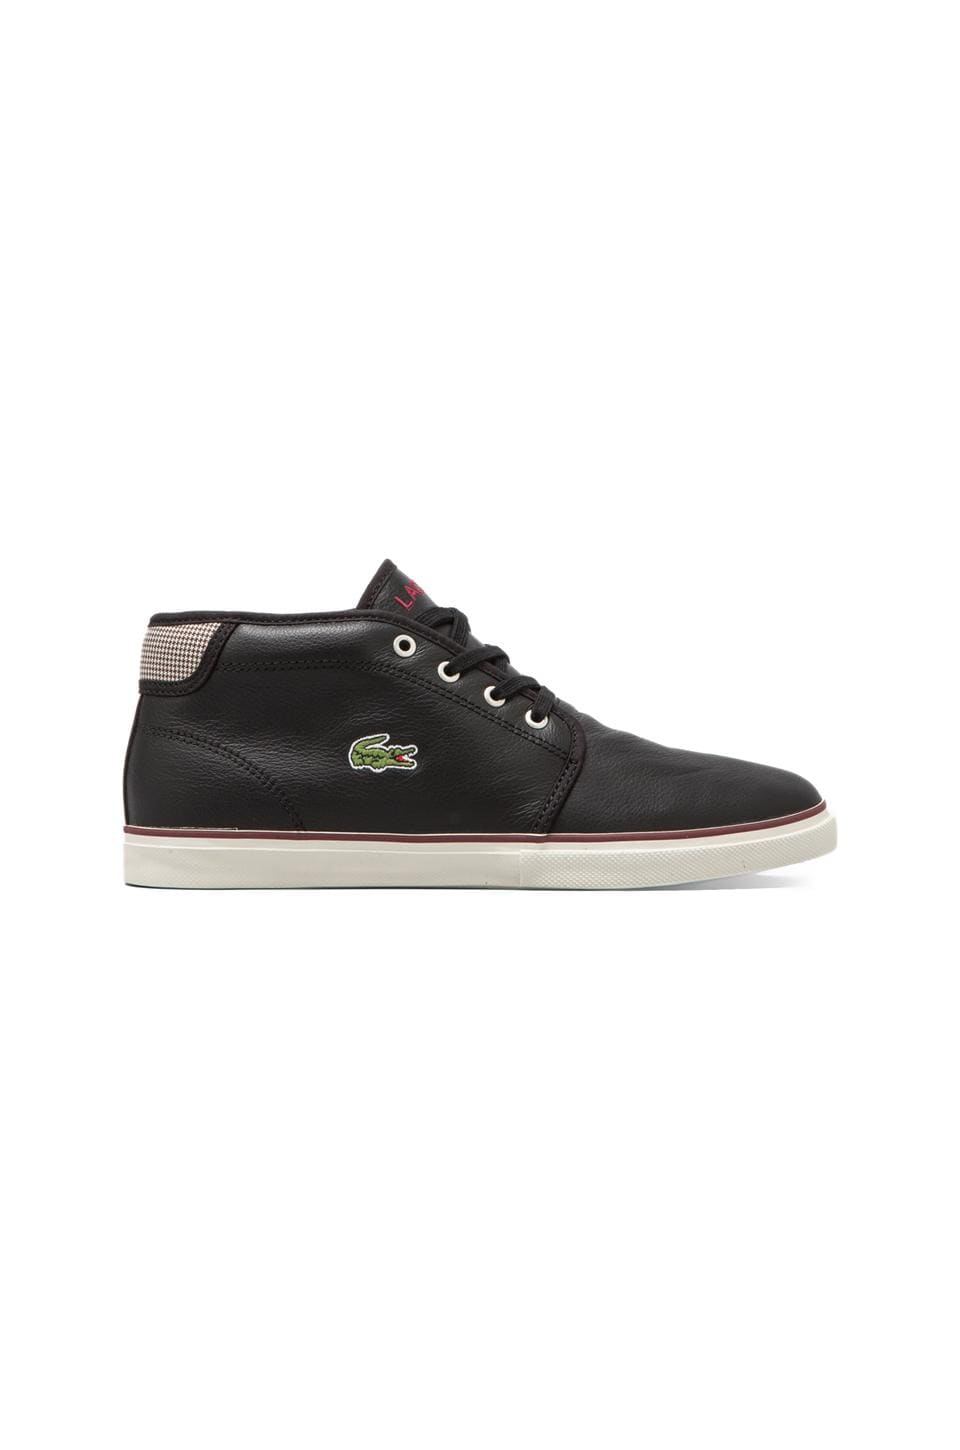 Lacoste Ampthill MTS in Black/Dark Red